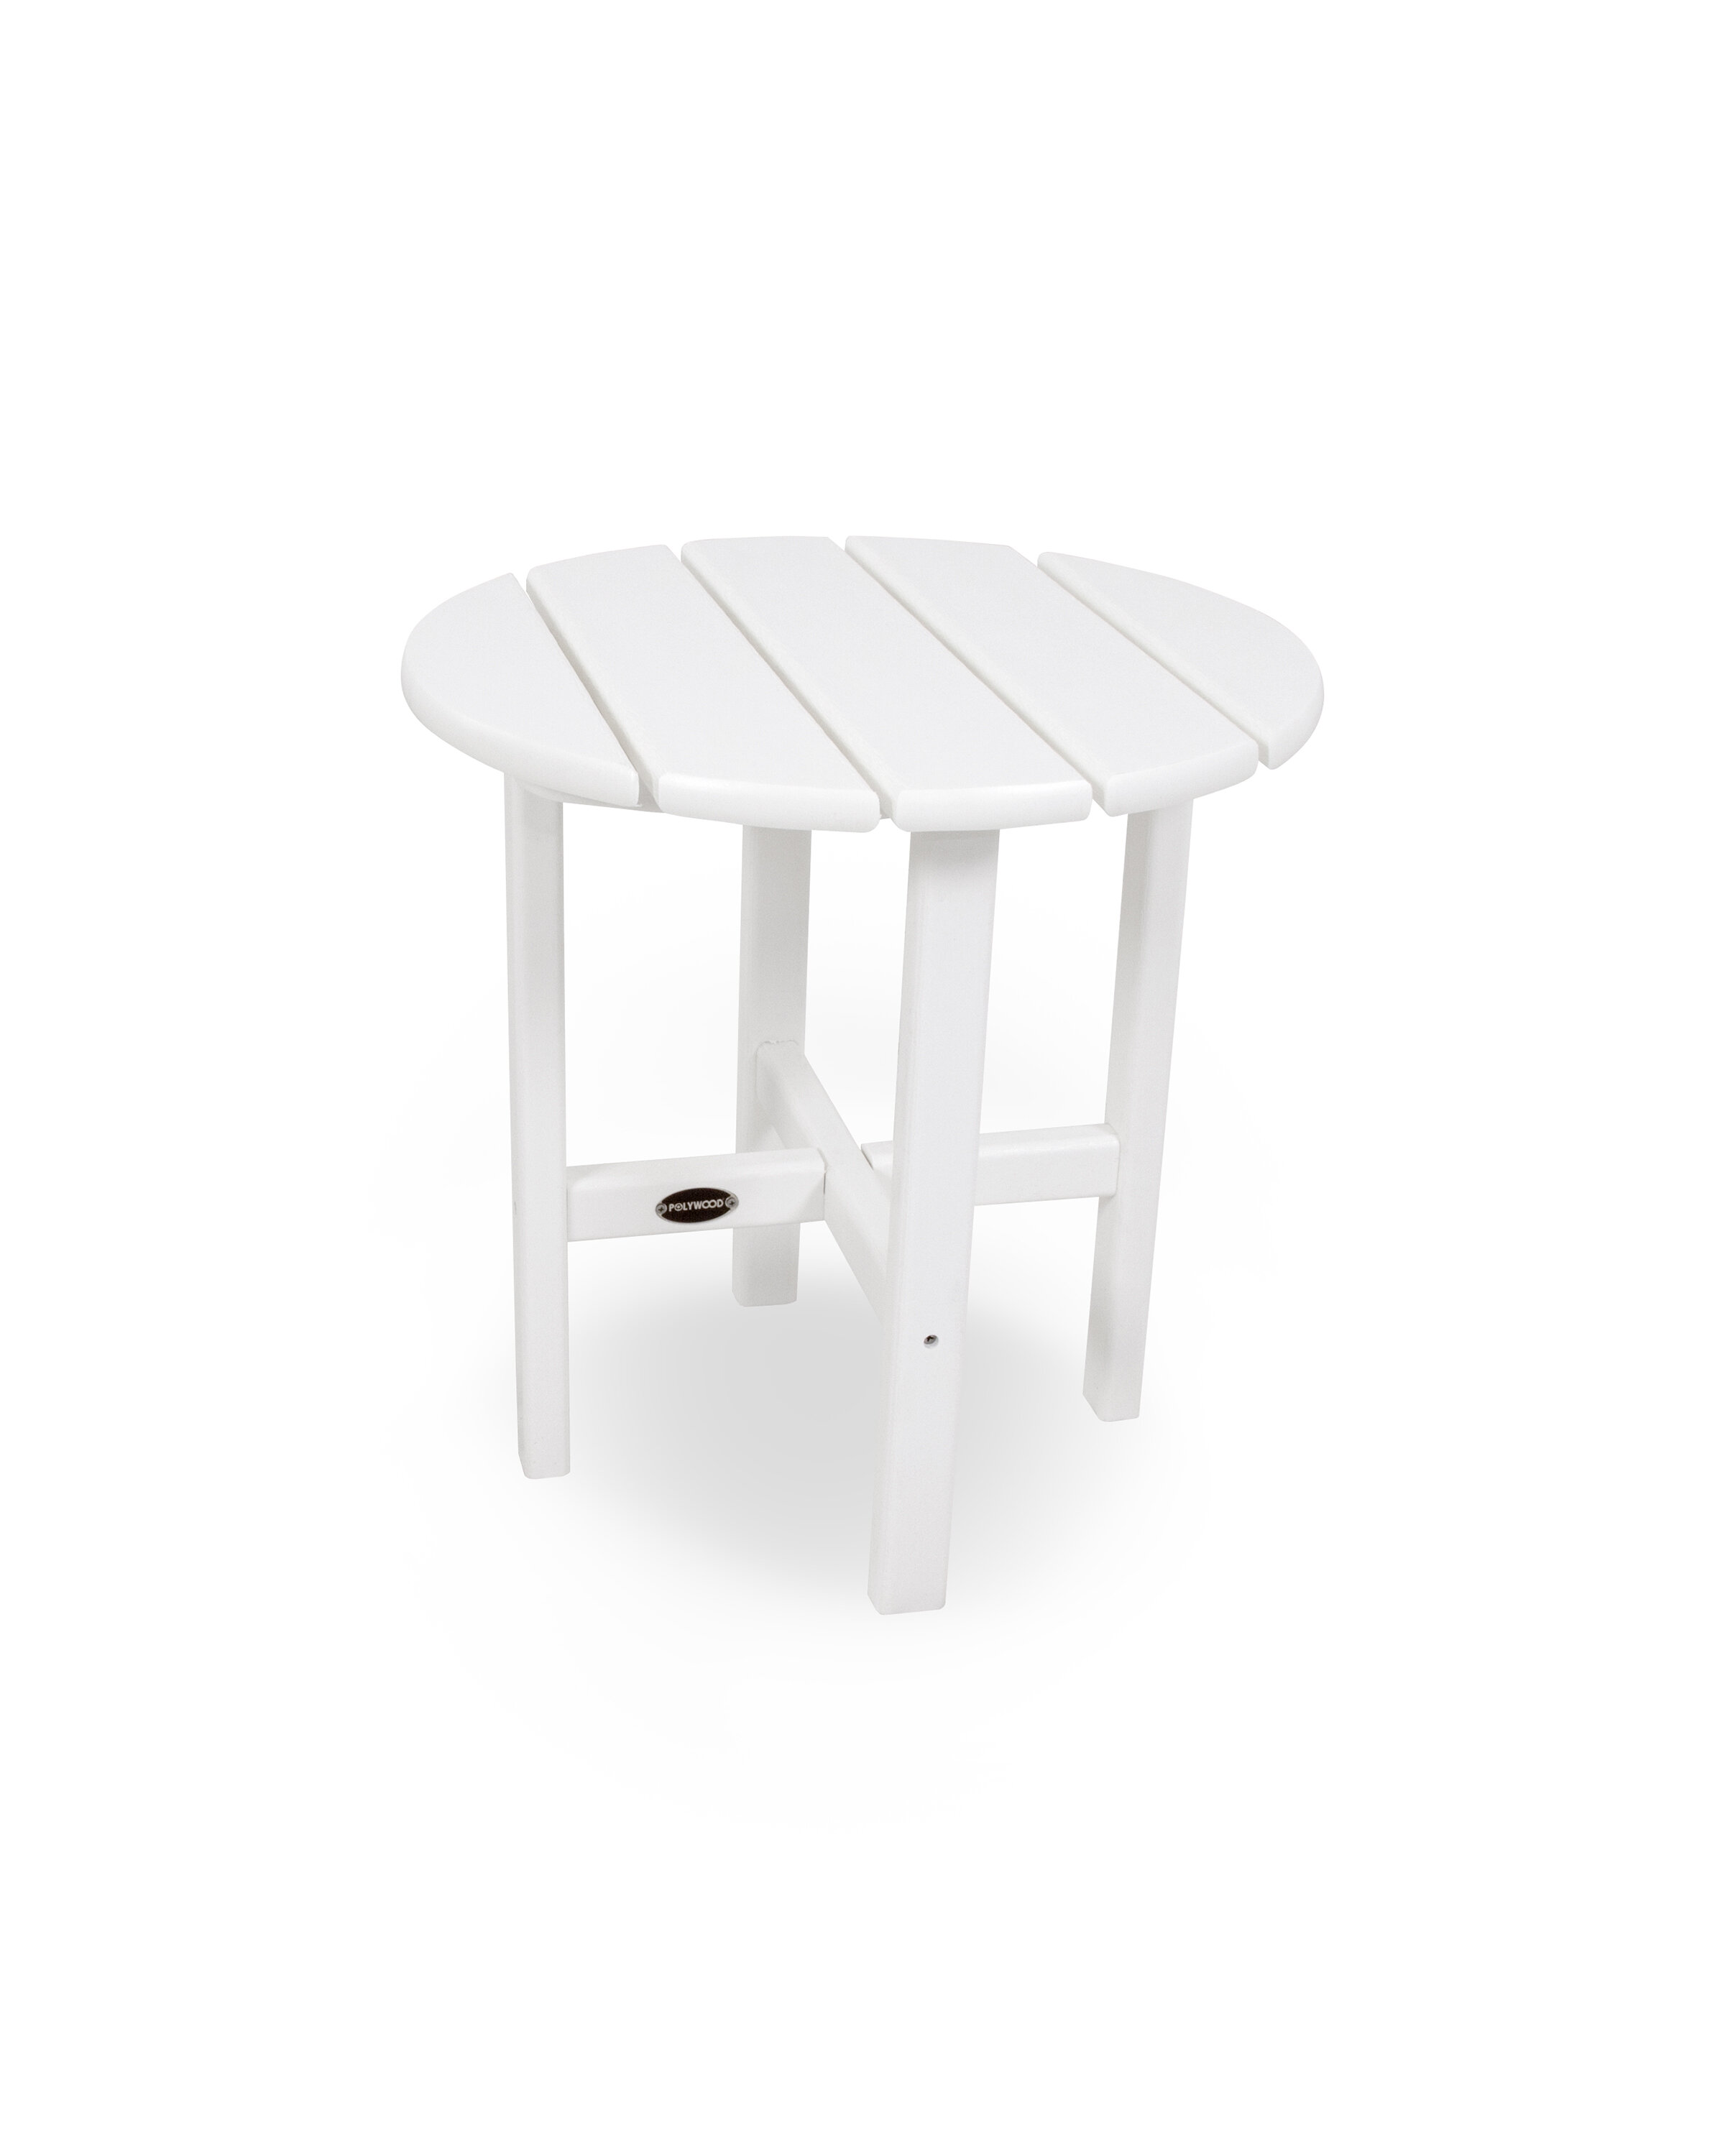 polywood side table reviews wayfair Kitchen Center Island Cabinet